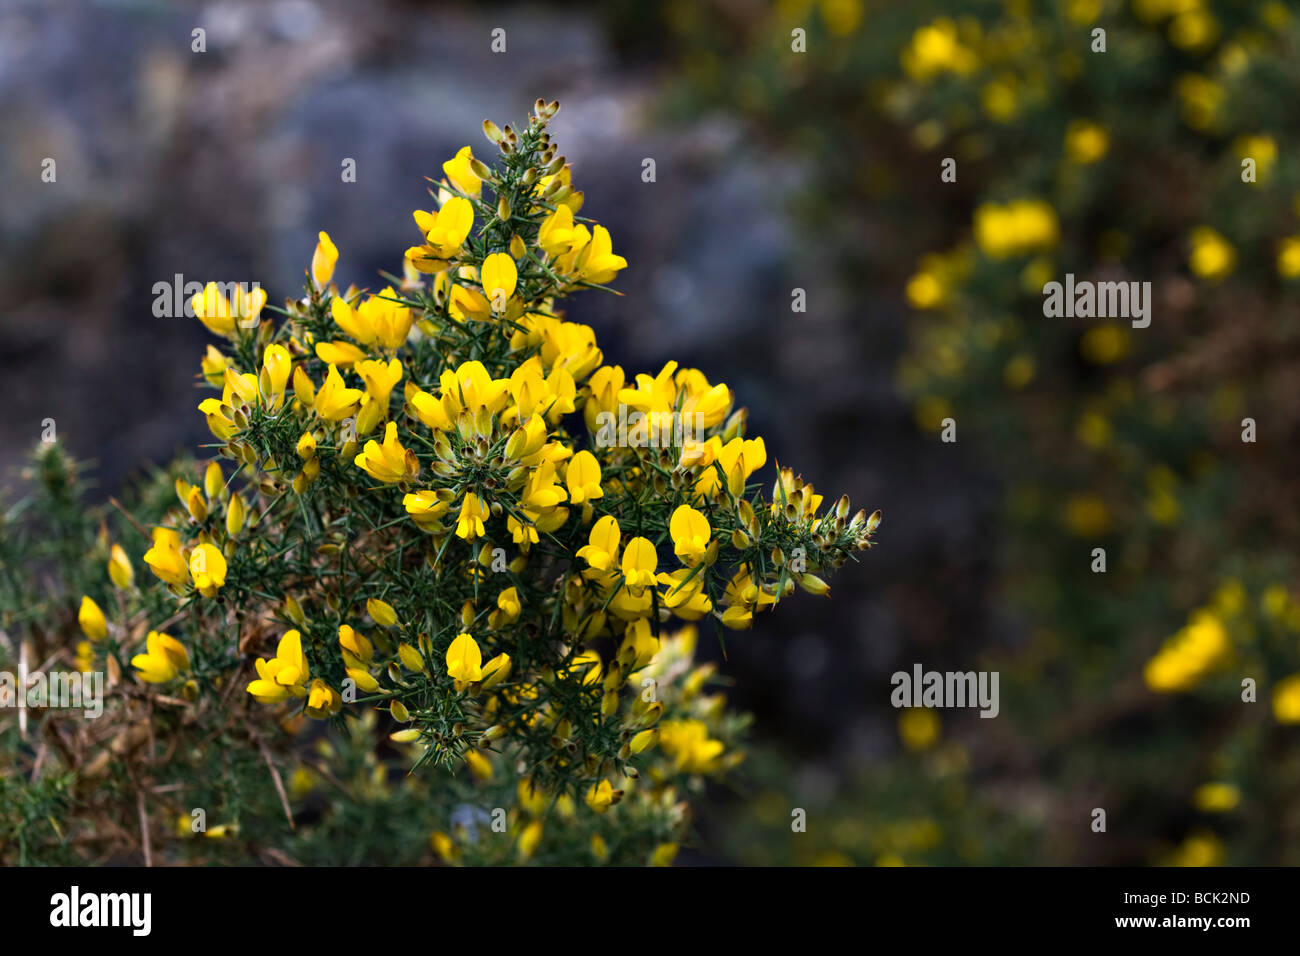 Yellow flowers of the common gorse bush growing near ardgay stock yellow flowers of the common gorse bush growing near ardgay sutherland scotland in spring mightylinksfo